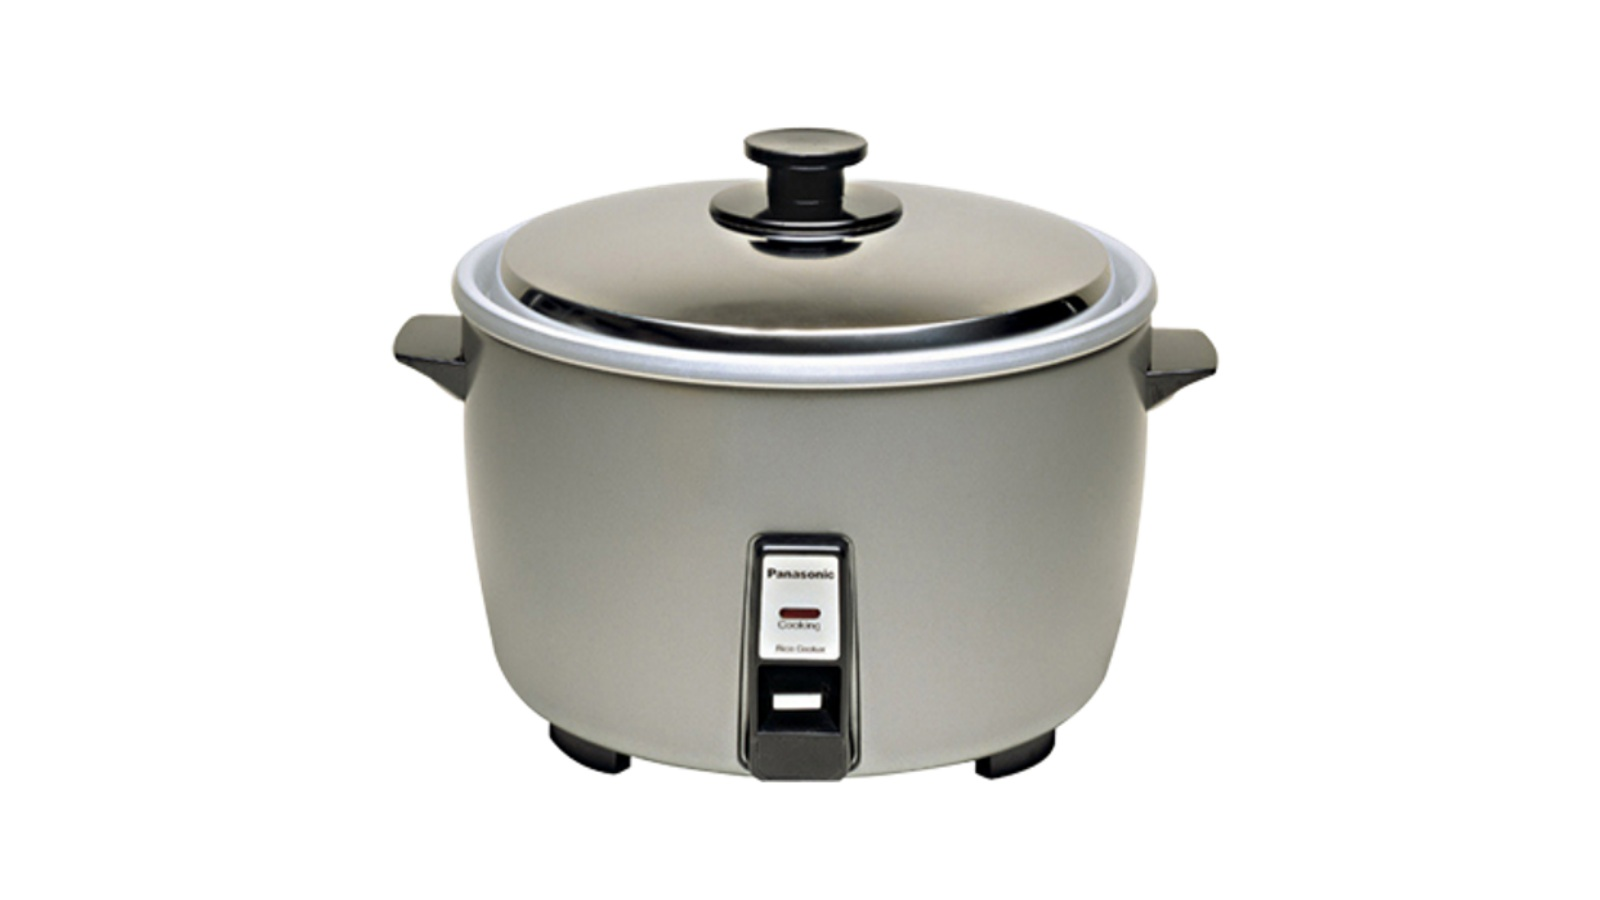 Electric Commercial Cookers ~ Panasonic commercial electric rice cooker harvey norman